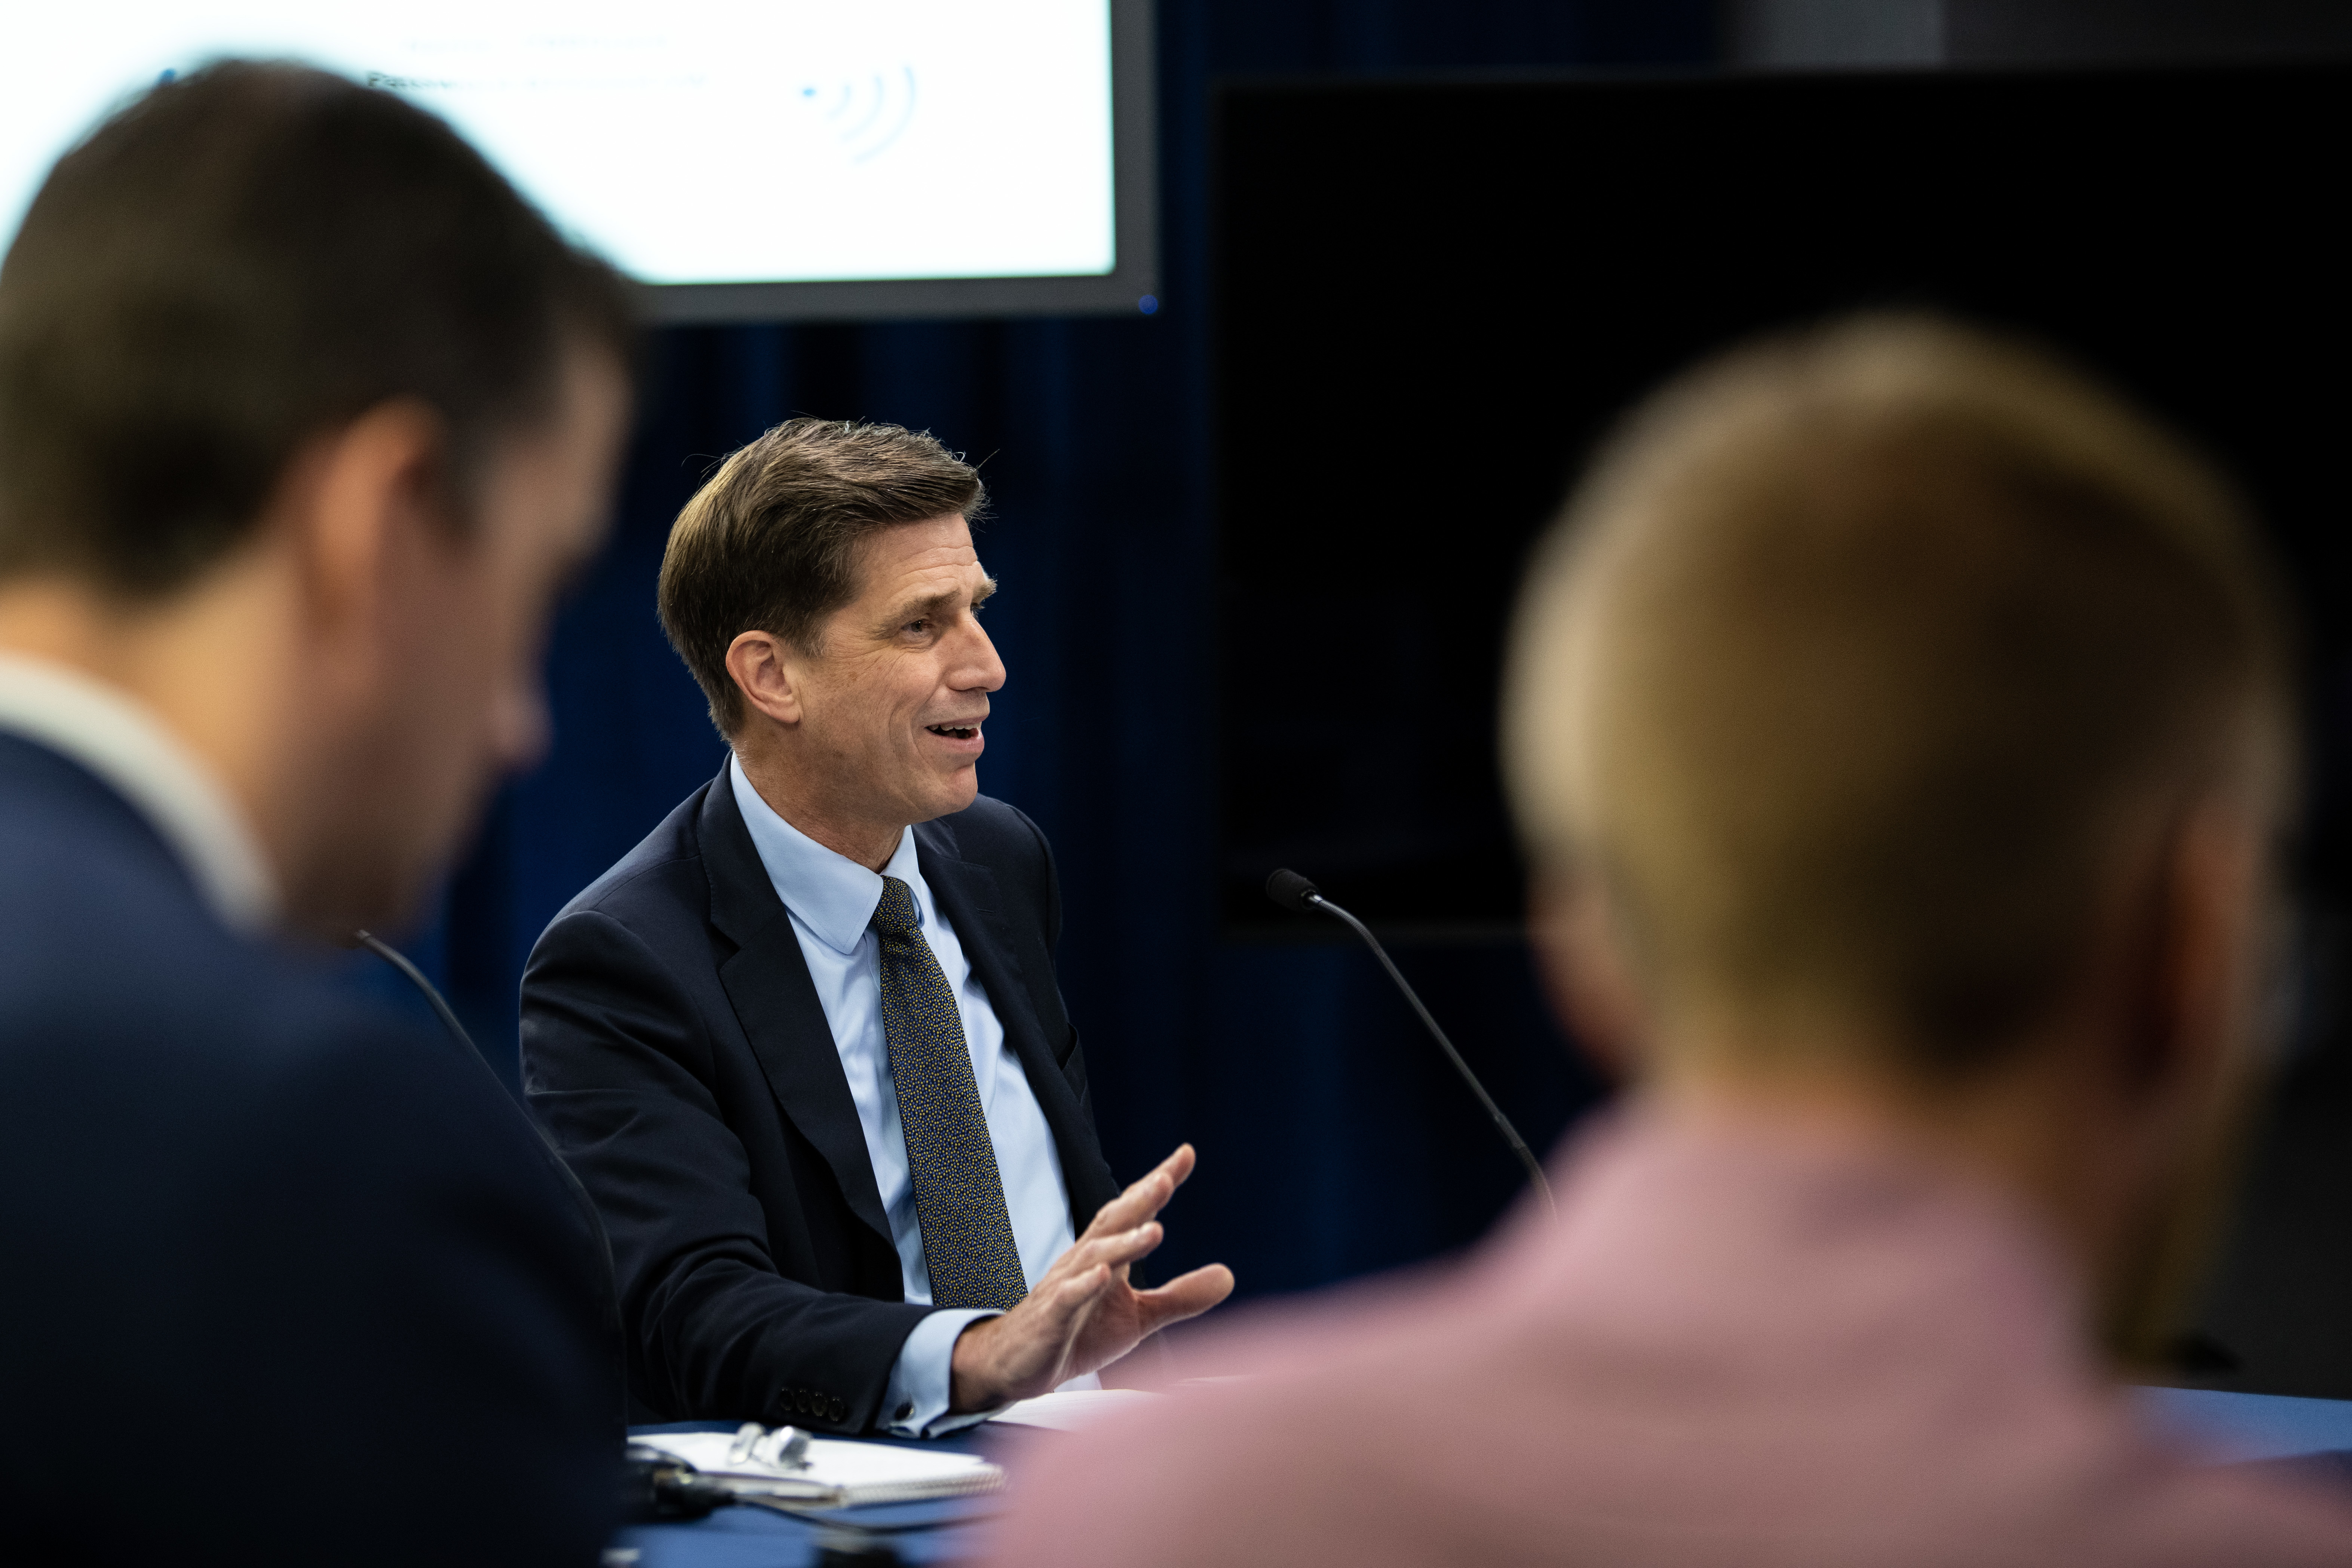 Dana Deasy, Department of Defense chief information officer, hosts a roundtable discussion on the enterprise cloud initiative with reporters, Aug. 9, 2019. (Air Force Staff Sgt. Andrew Carroll)